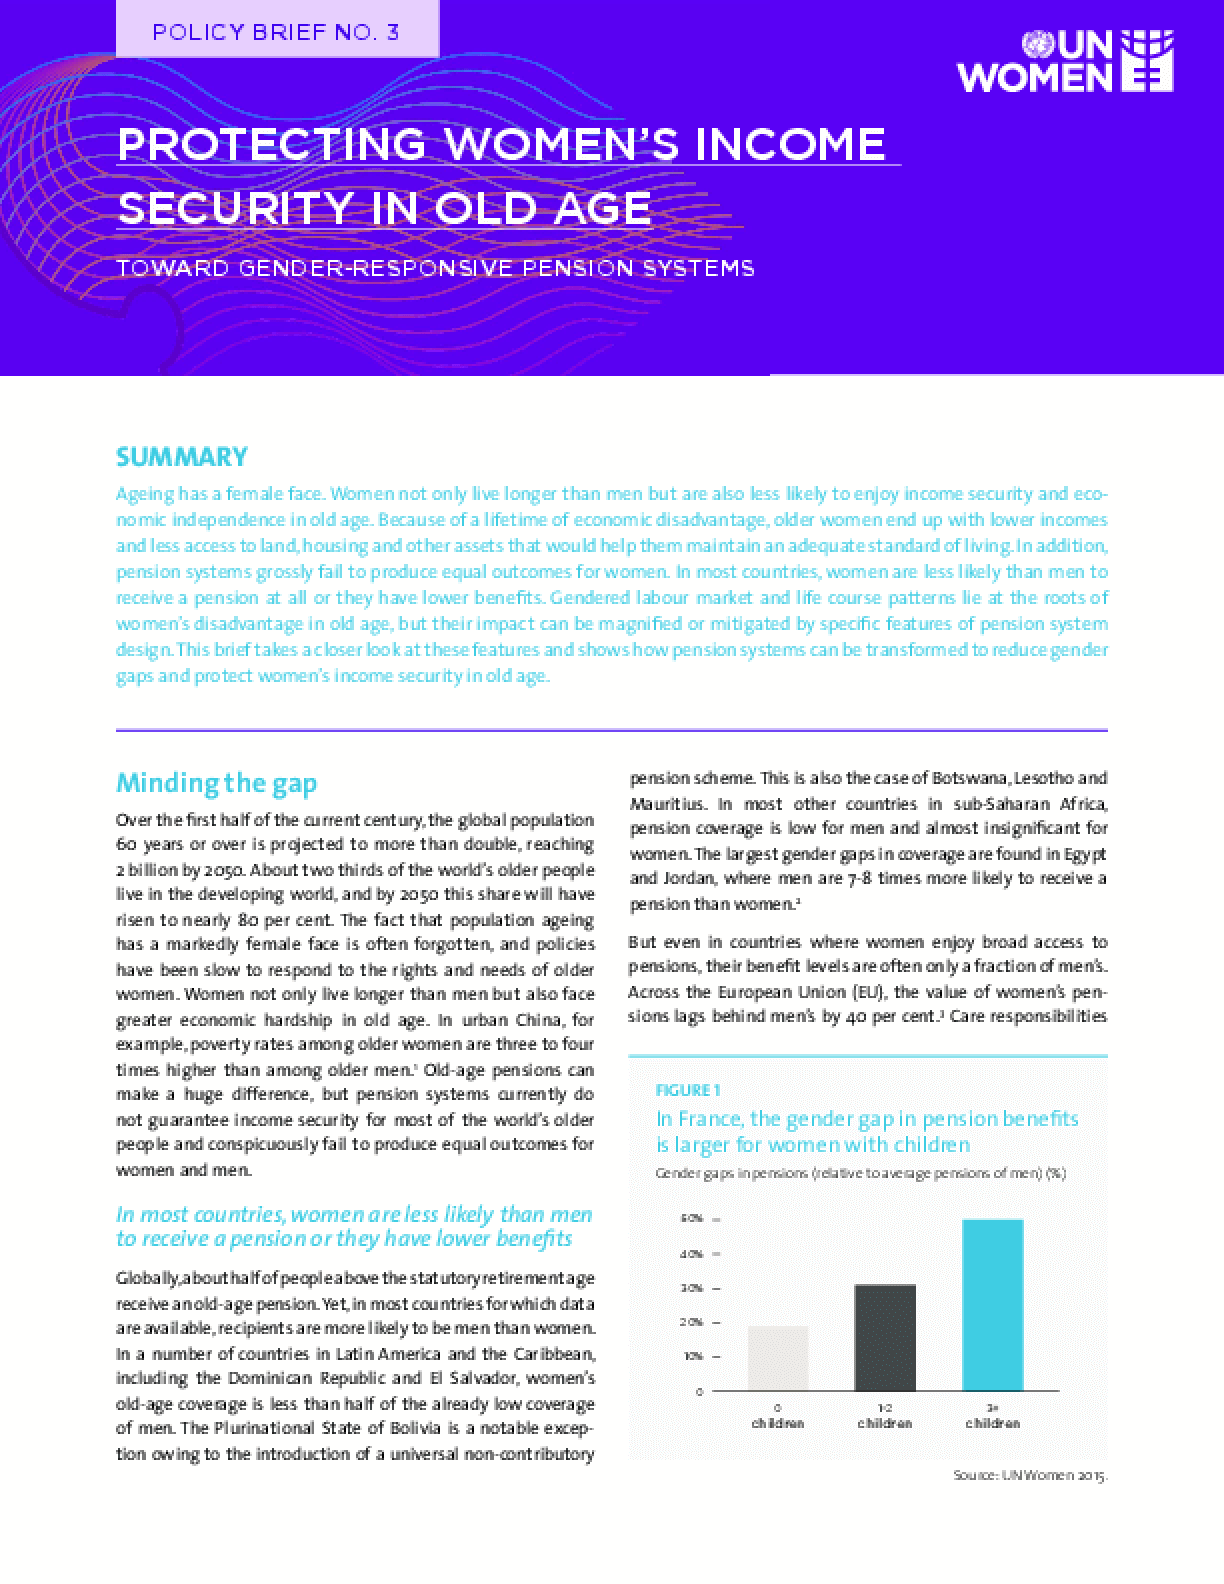 Protecting Women's Income Security in Old Age: Toward Gender-Responsive Pension Systems